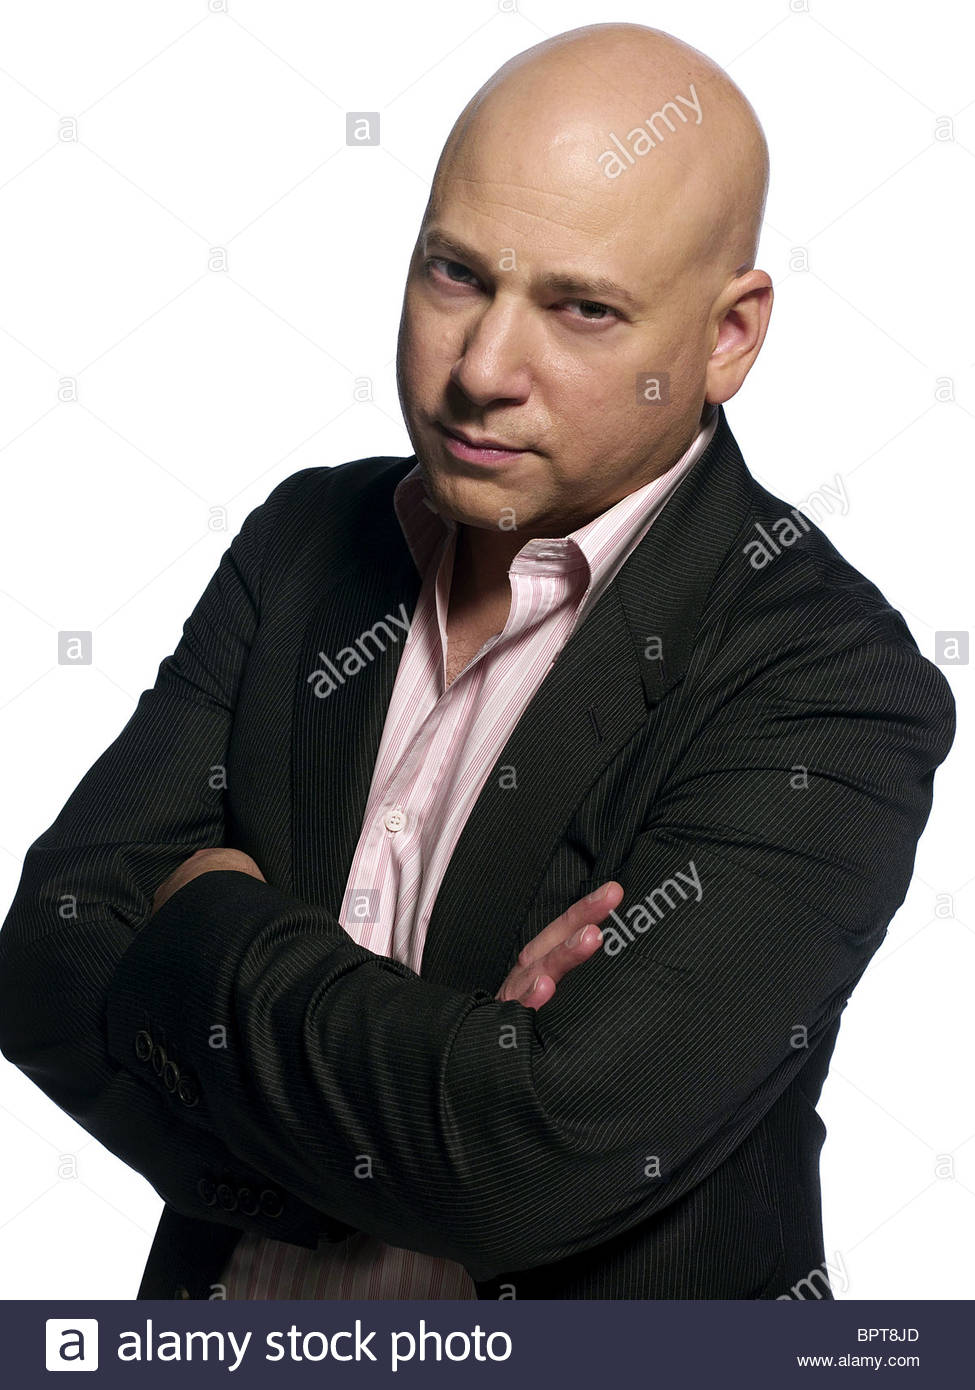 EVAN HANDLER CALIFORNICATION (2007) Stock Photo